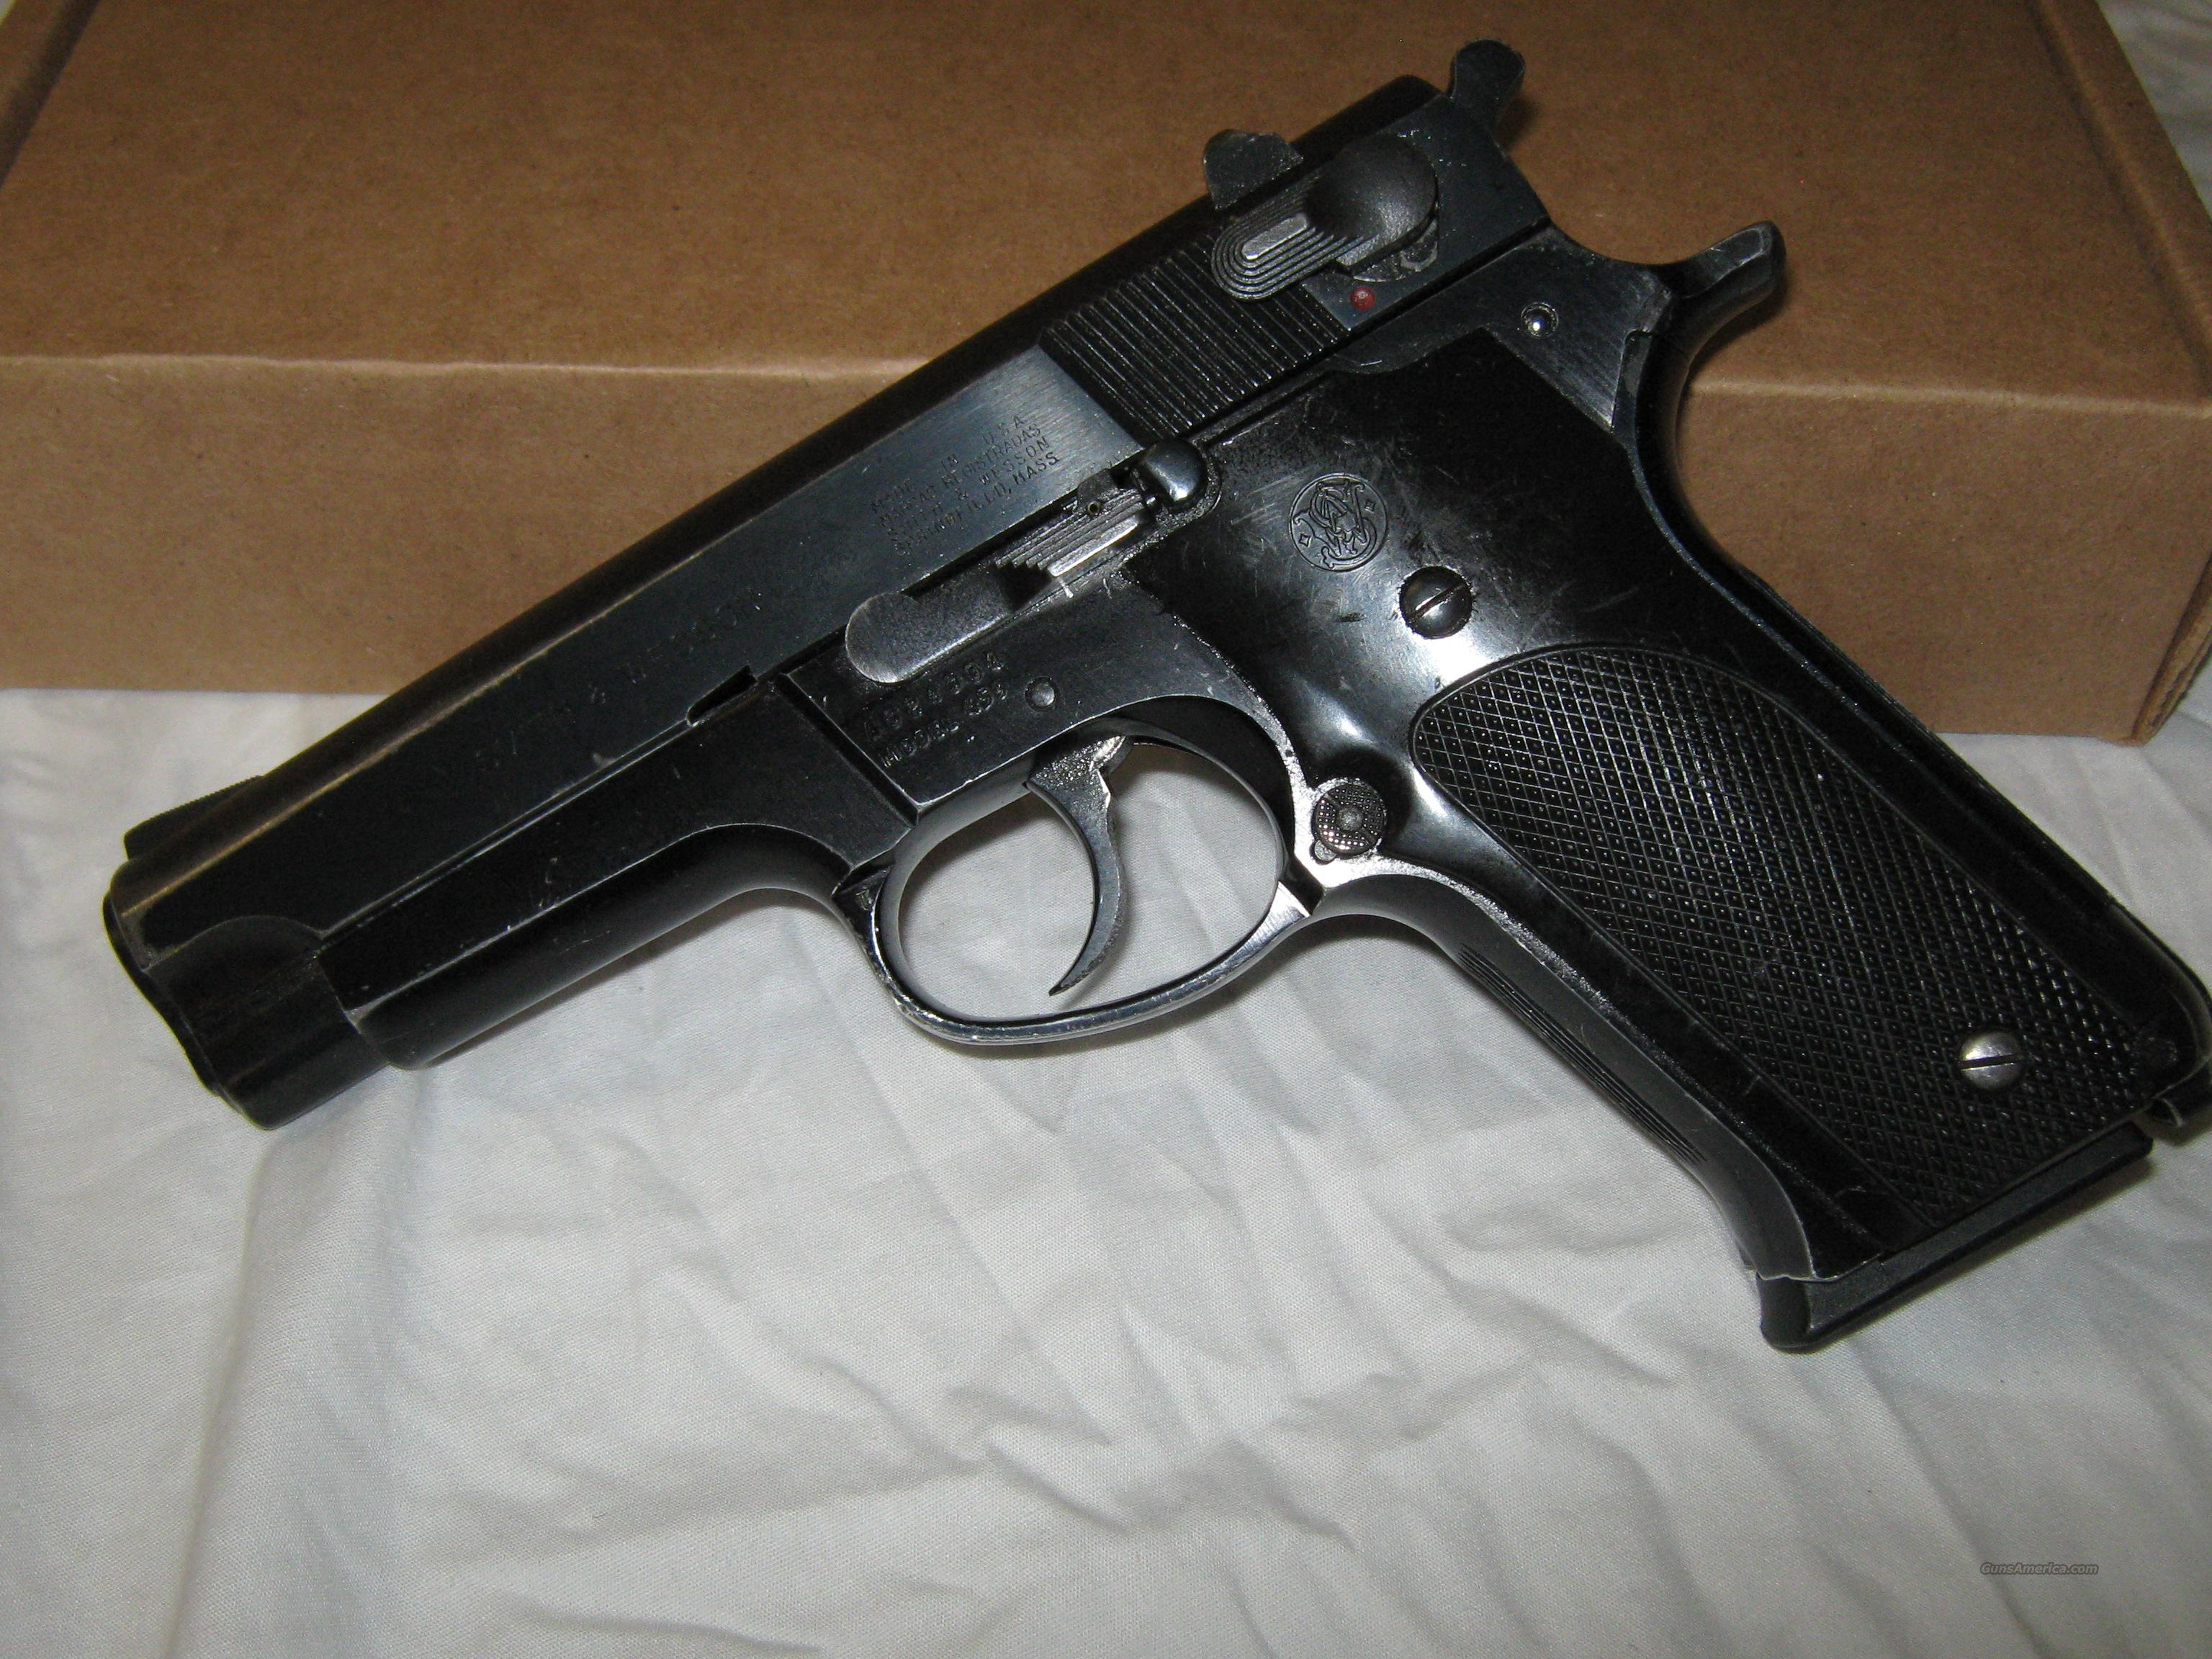 Smith & Wesson 459 9mm ON SALE!